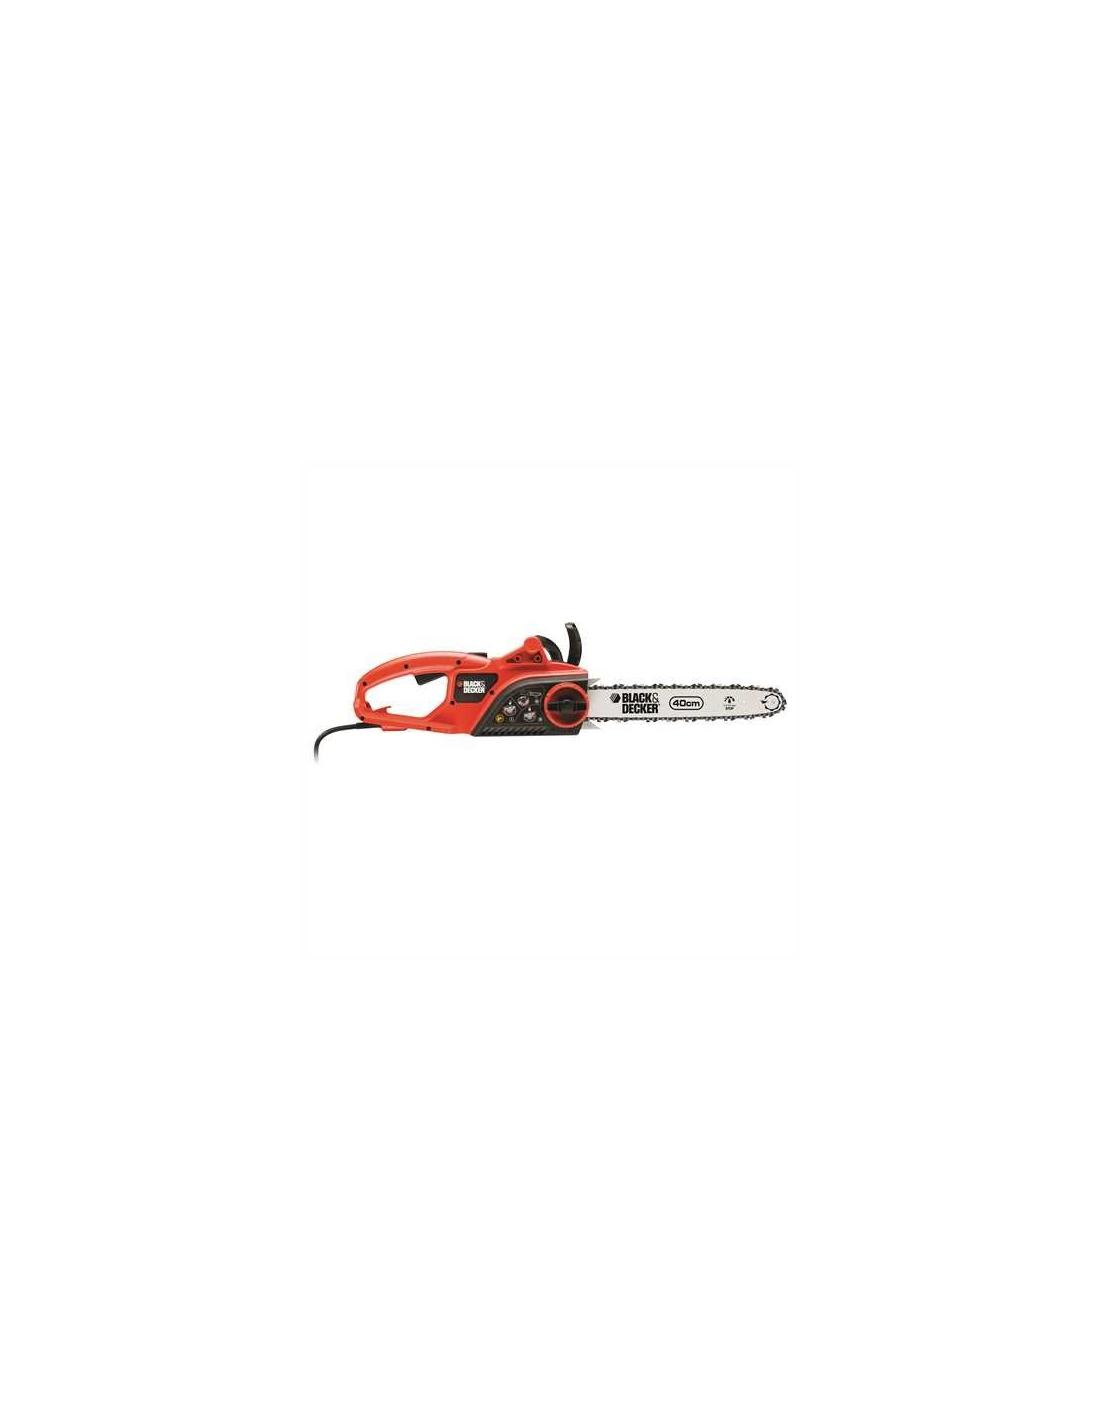 TRONÇONNEUSE 1900W 40CM BLACK DECKER - 1